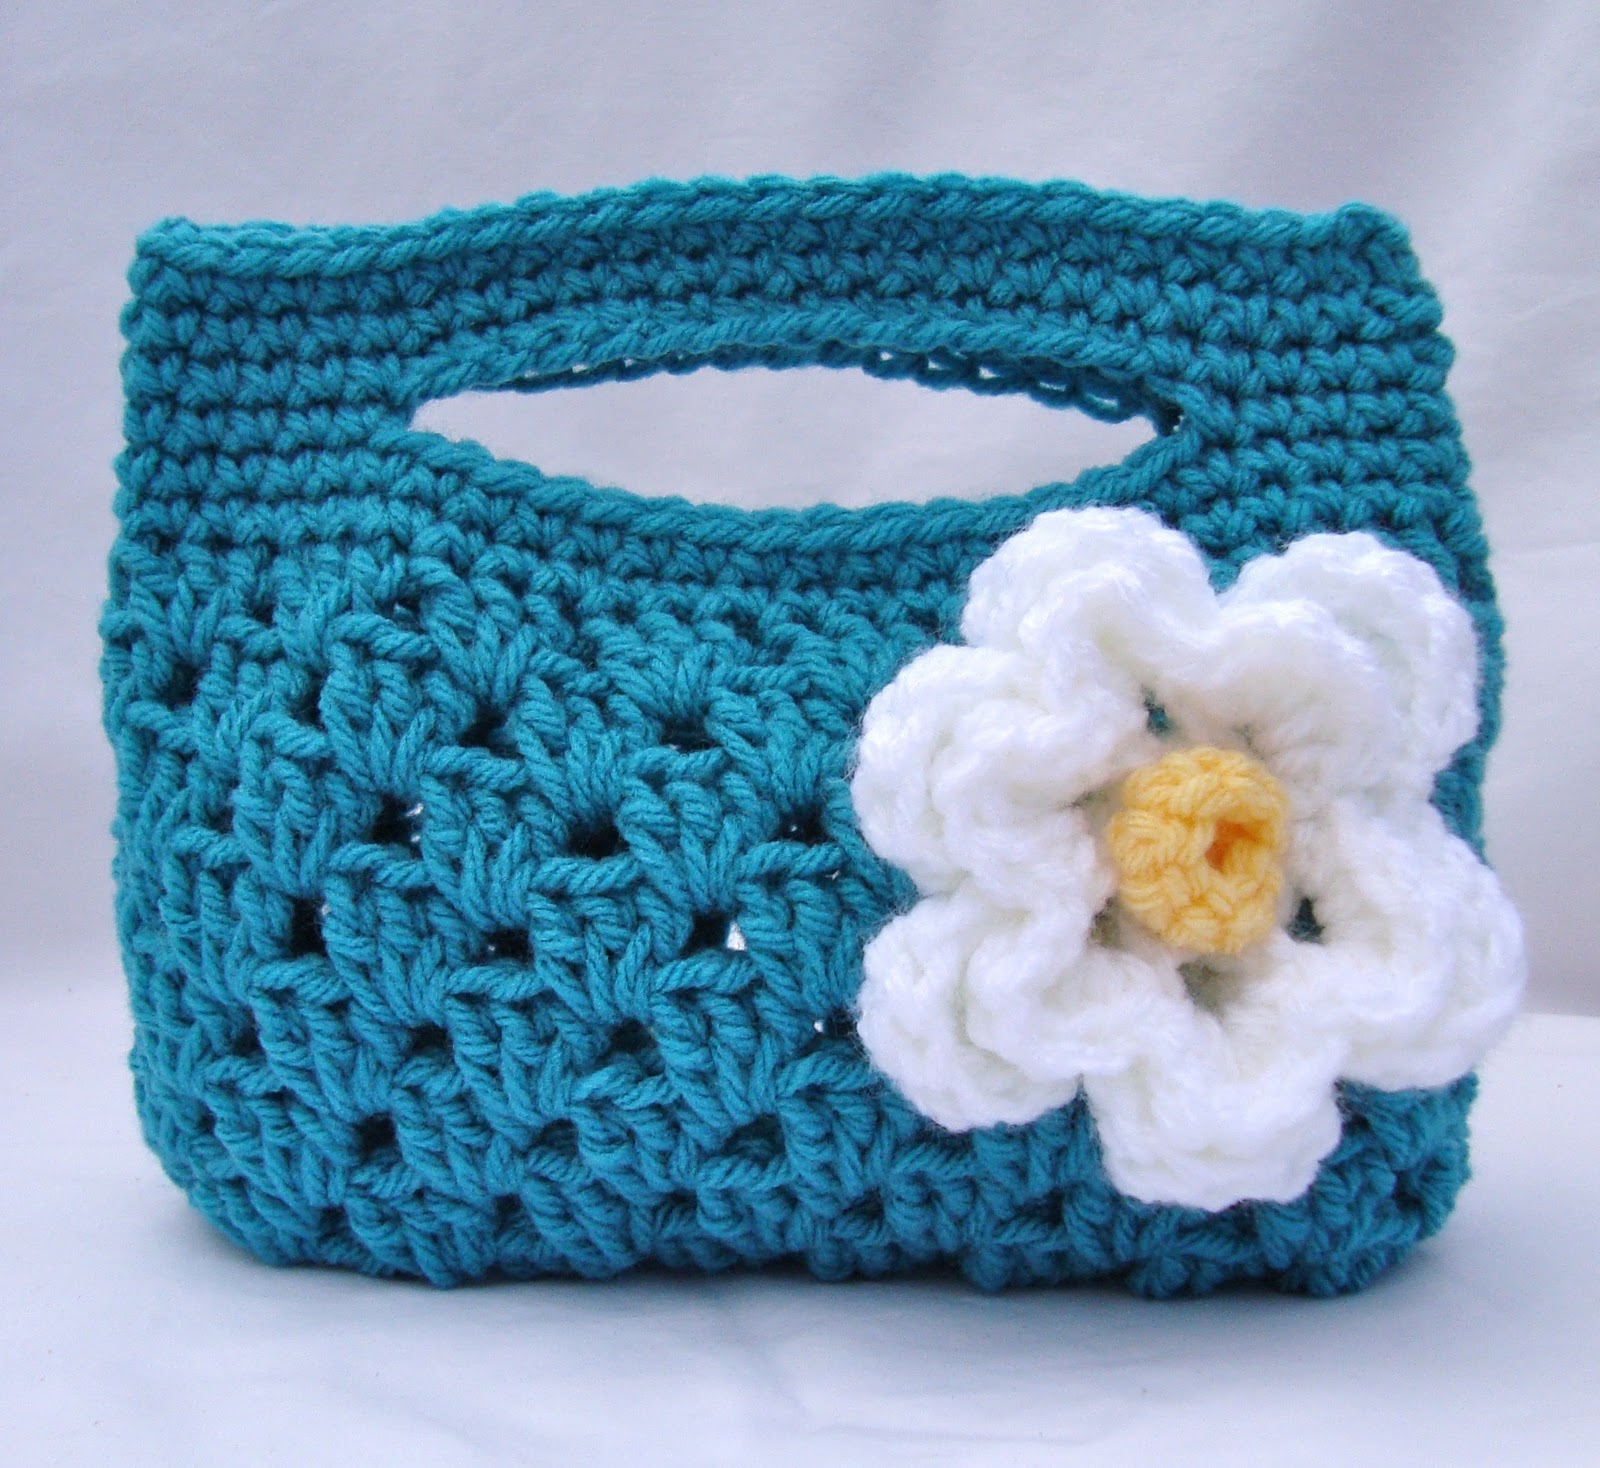 Free Crochet Pattern For Small Tote Bag : tangled happy: Granny Stripe Boutique Bag